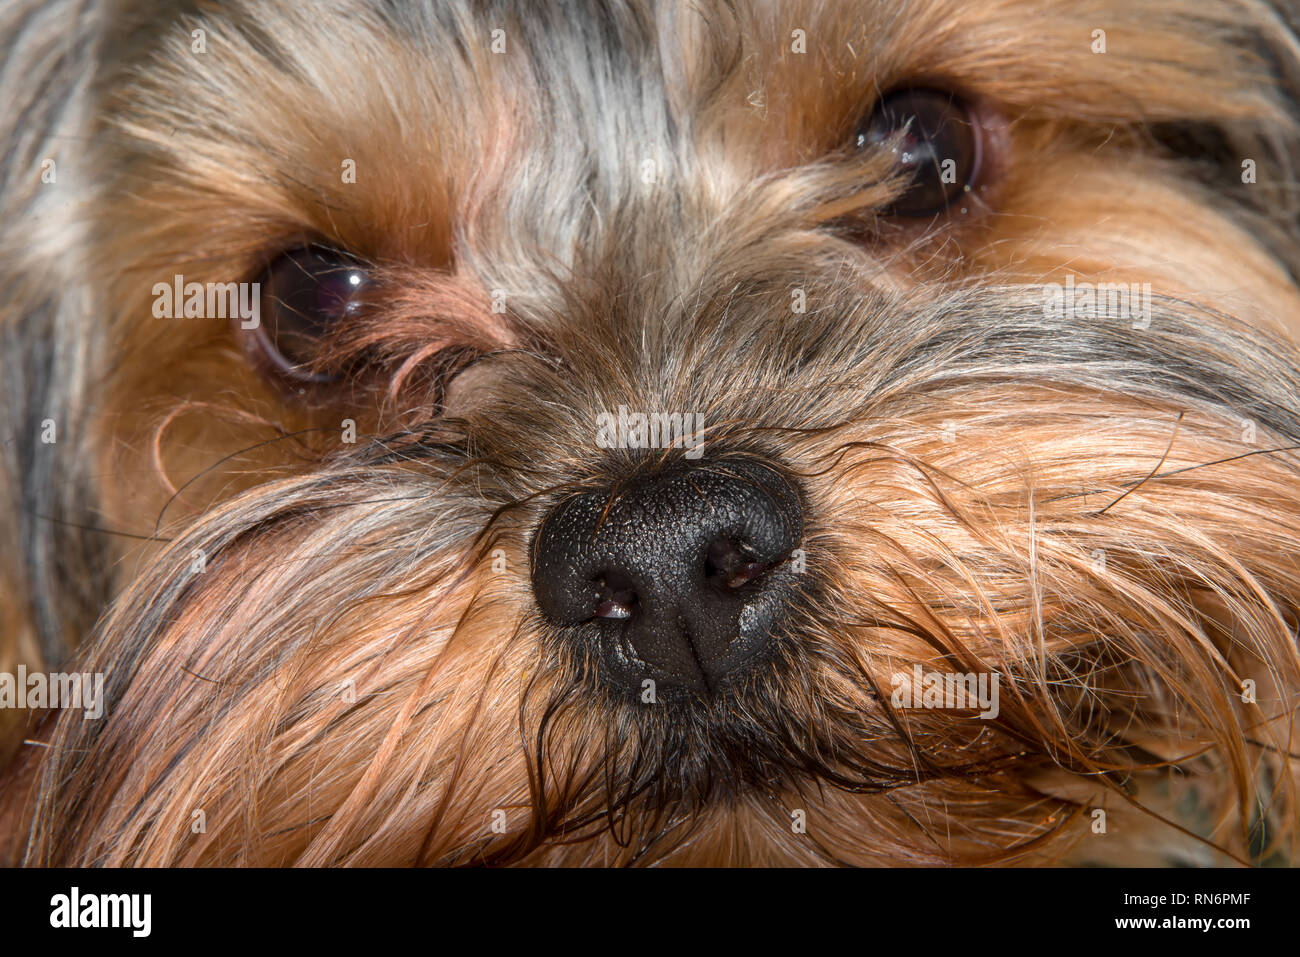 shaggy Stock Photos & 'shaggy Stock Images - Page 29 - Alamy